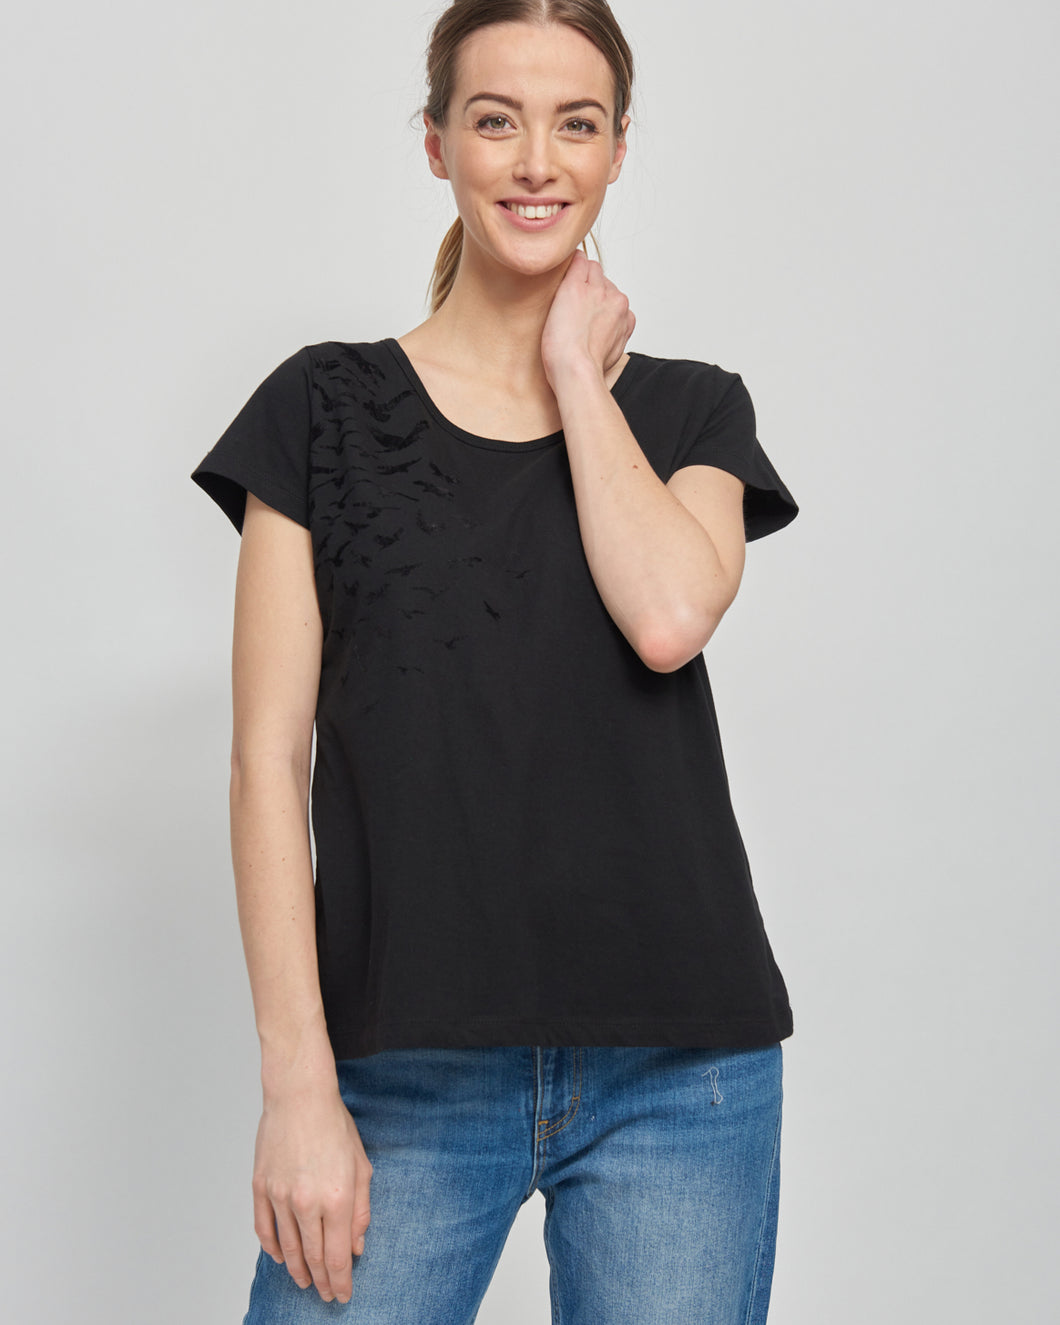 Flock of Birds Black Nursing T-shirt